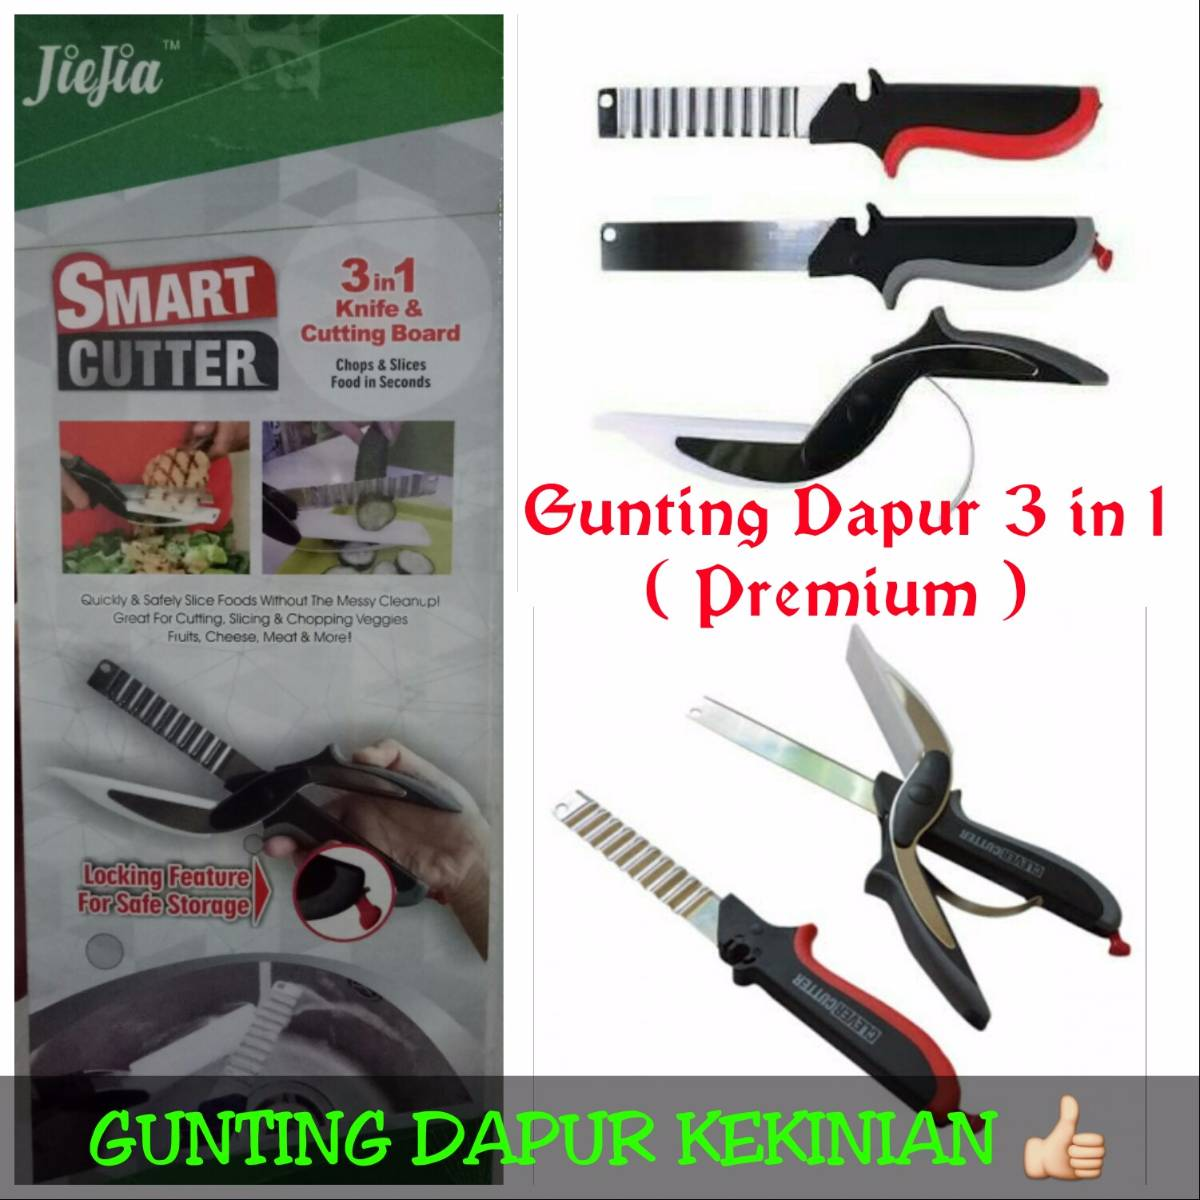 Gunting Dapur 3 In 1 / Clever Cutter New !!! (kualitas Premium)